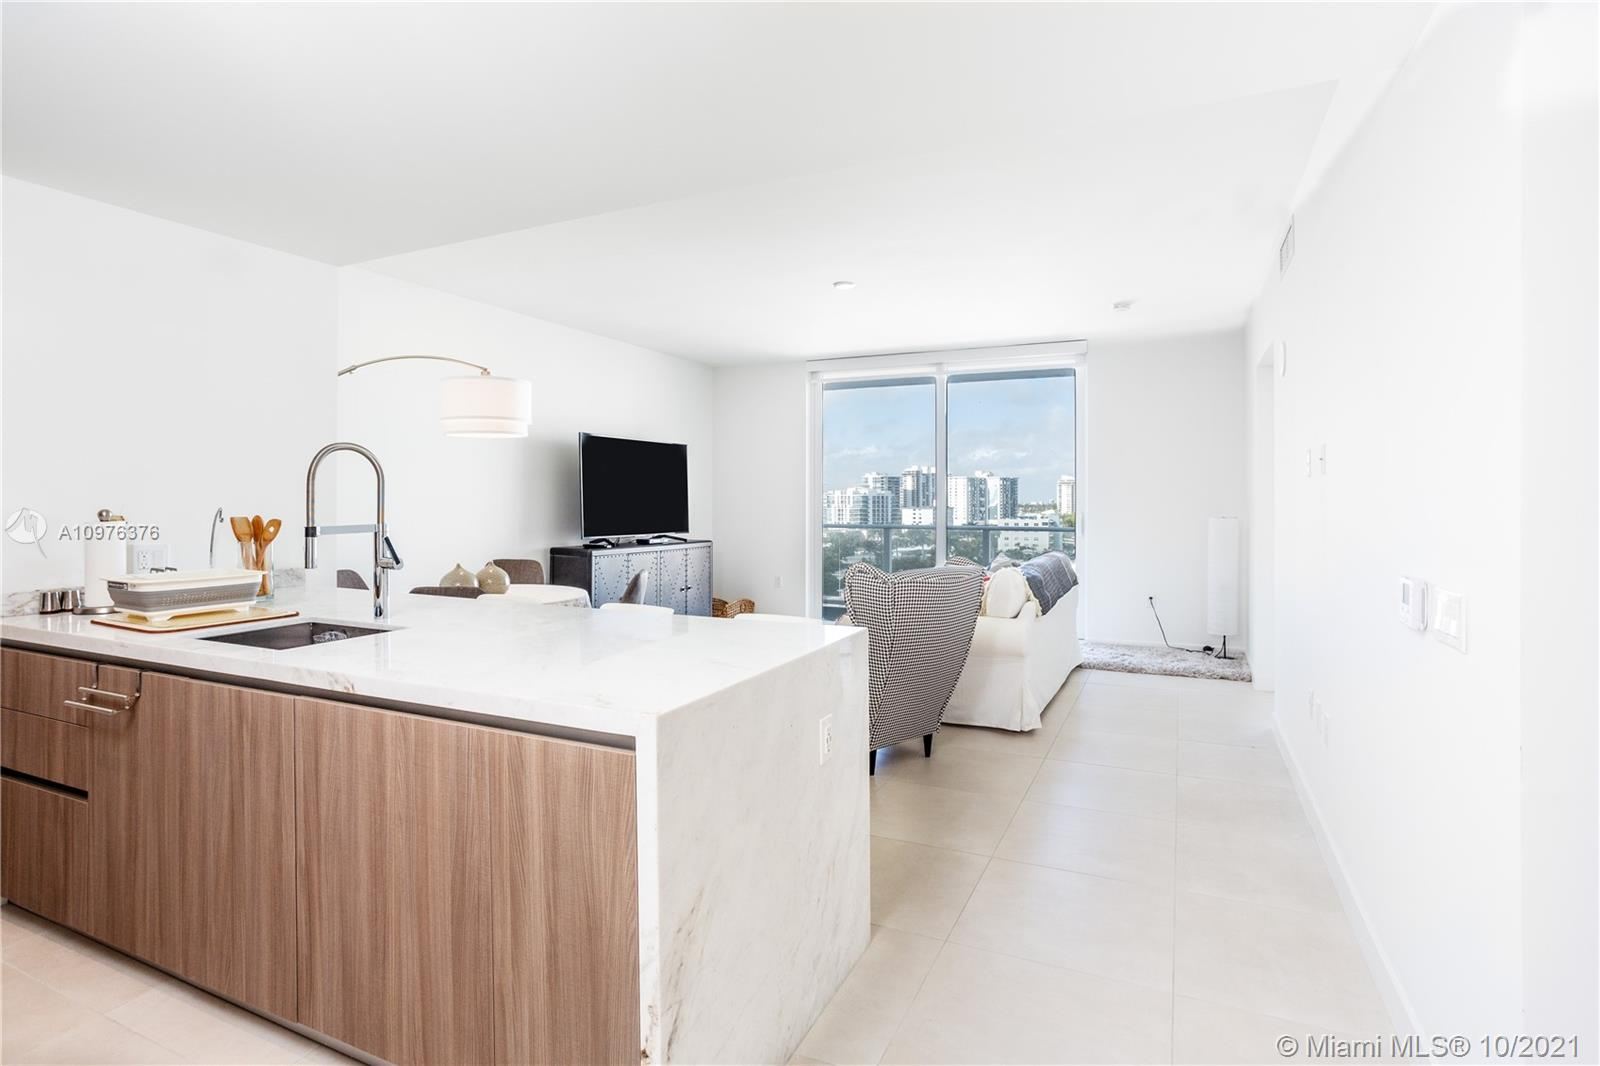 GALE RESIDENCES, BEAUTIFUL UNIT 1 BEDROOM, 1 BATHROOM PLUS DEN. UNIQUE LOCATION ONE BLOCK FROM THE BEACH. AMAZING COST BENEFIT FOR THIS UNIT WITH NO RENTAL RESTRICTIONS.